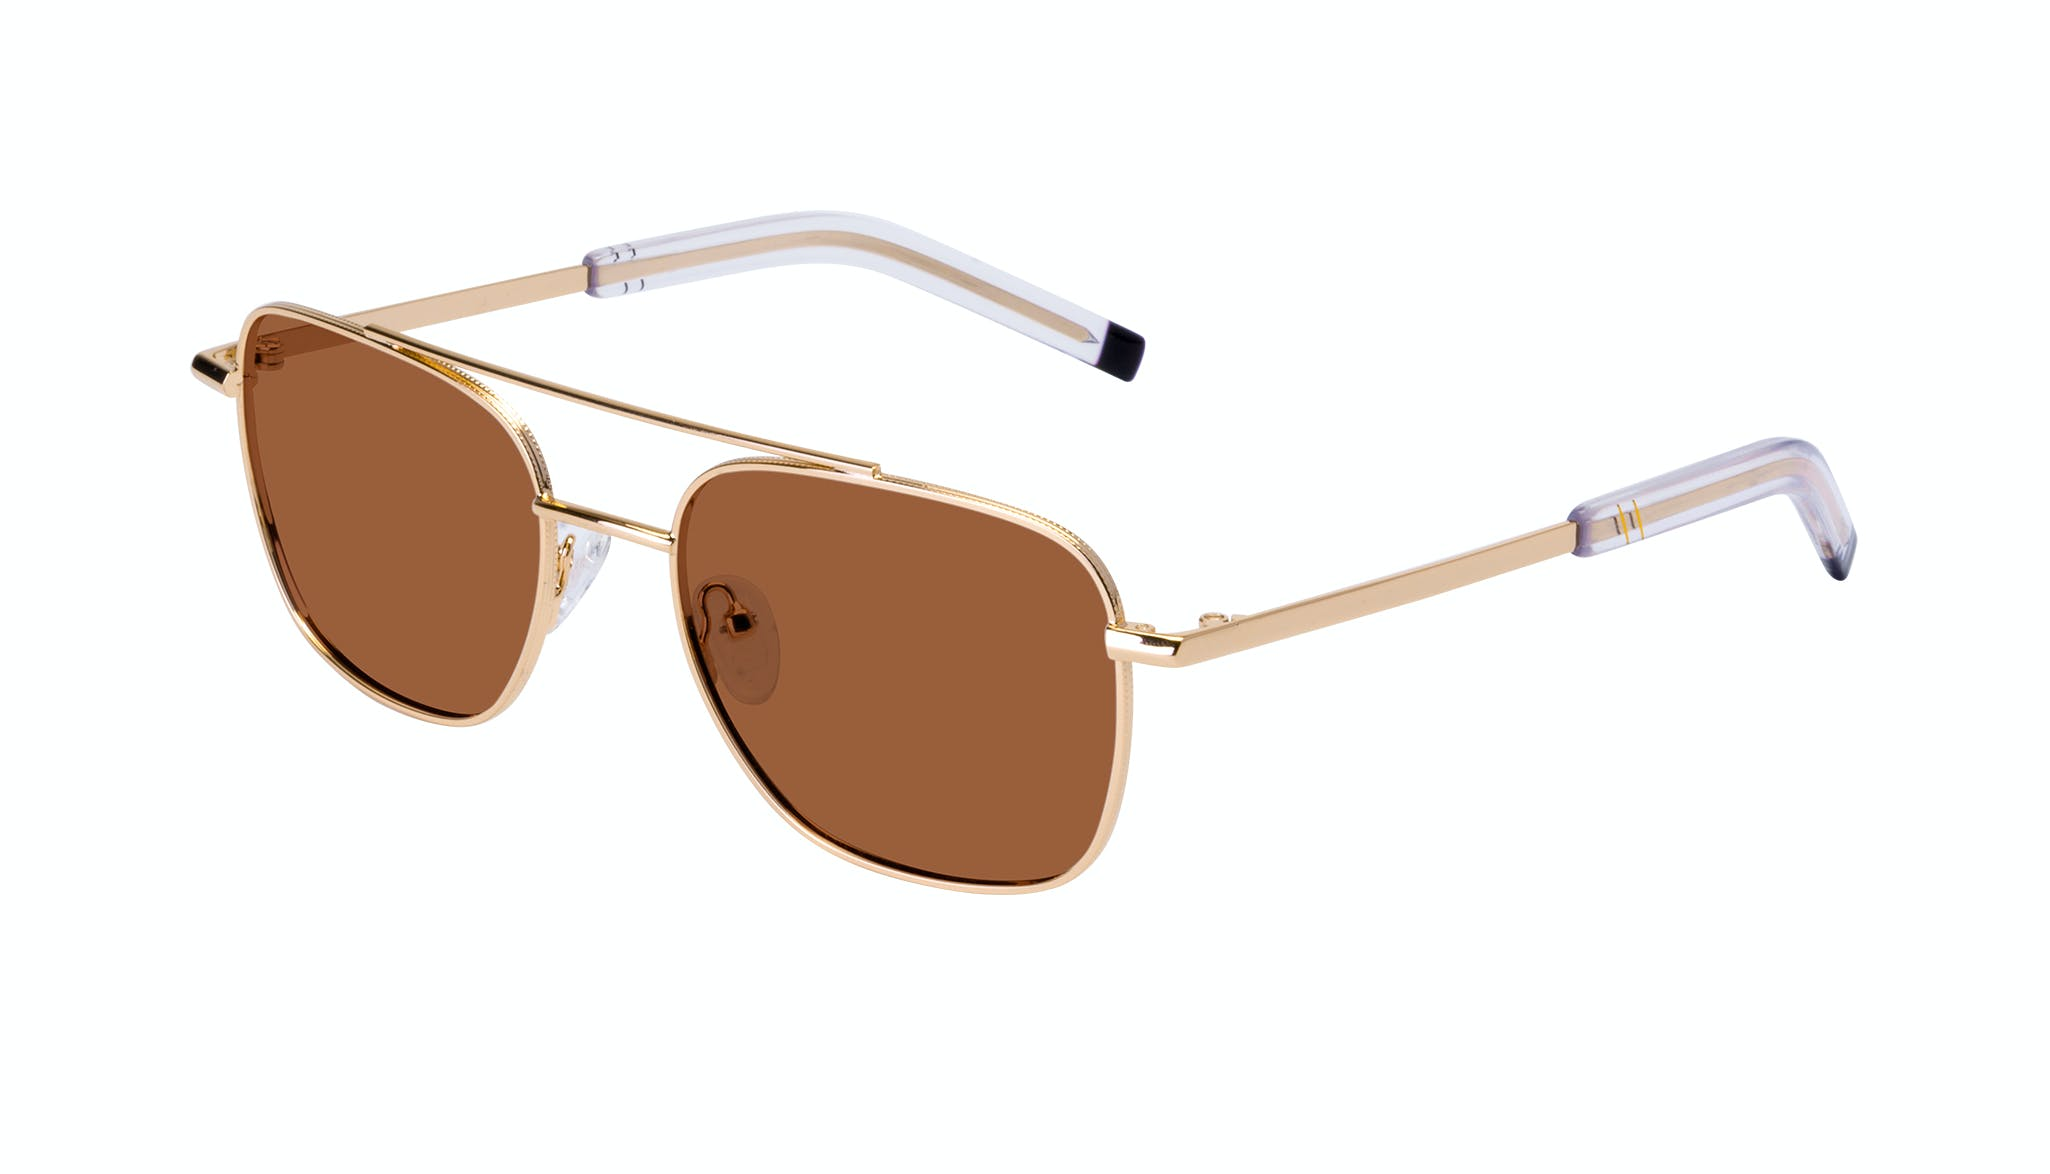 Affordable Fashion Glasses Aviator Sunglasses Men Drift Gold Tilt